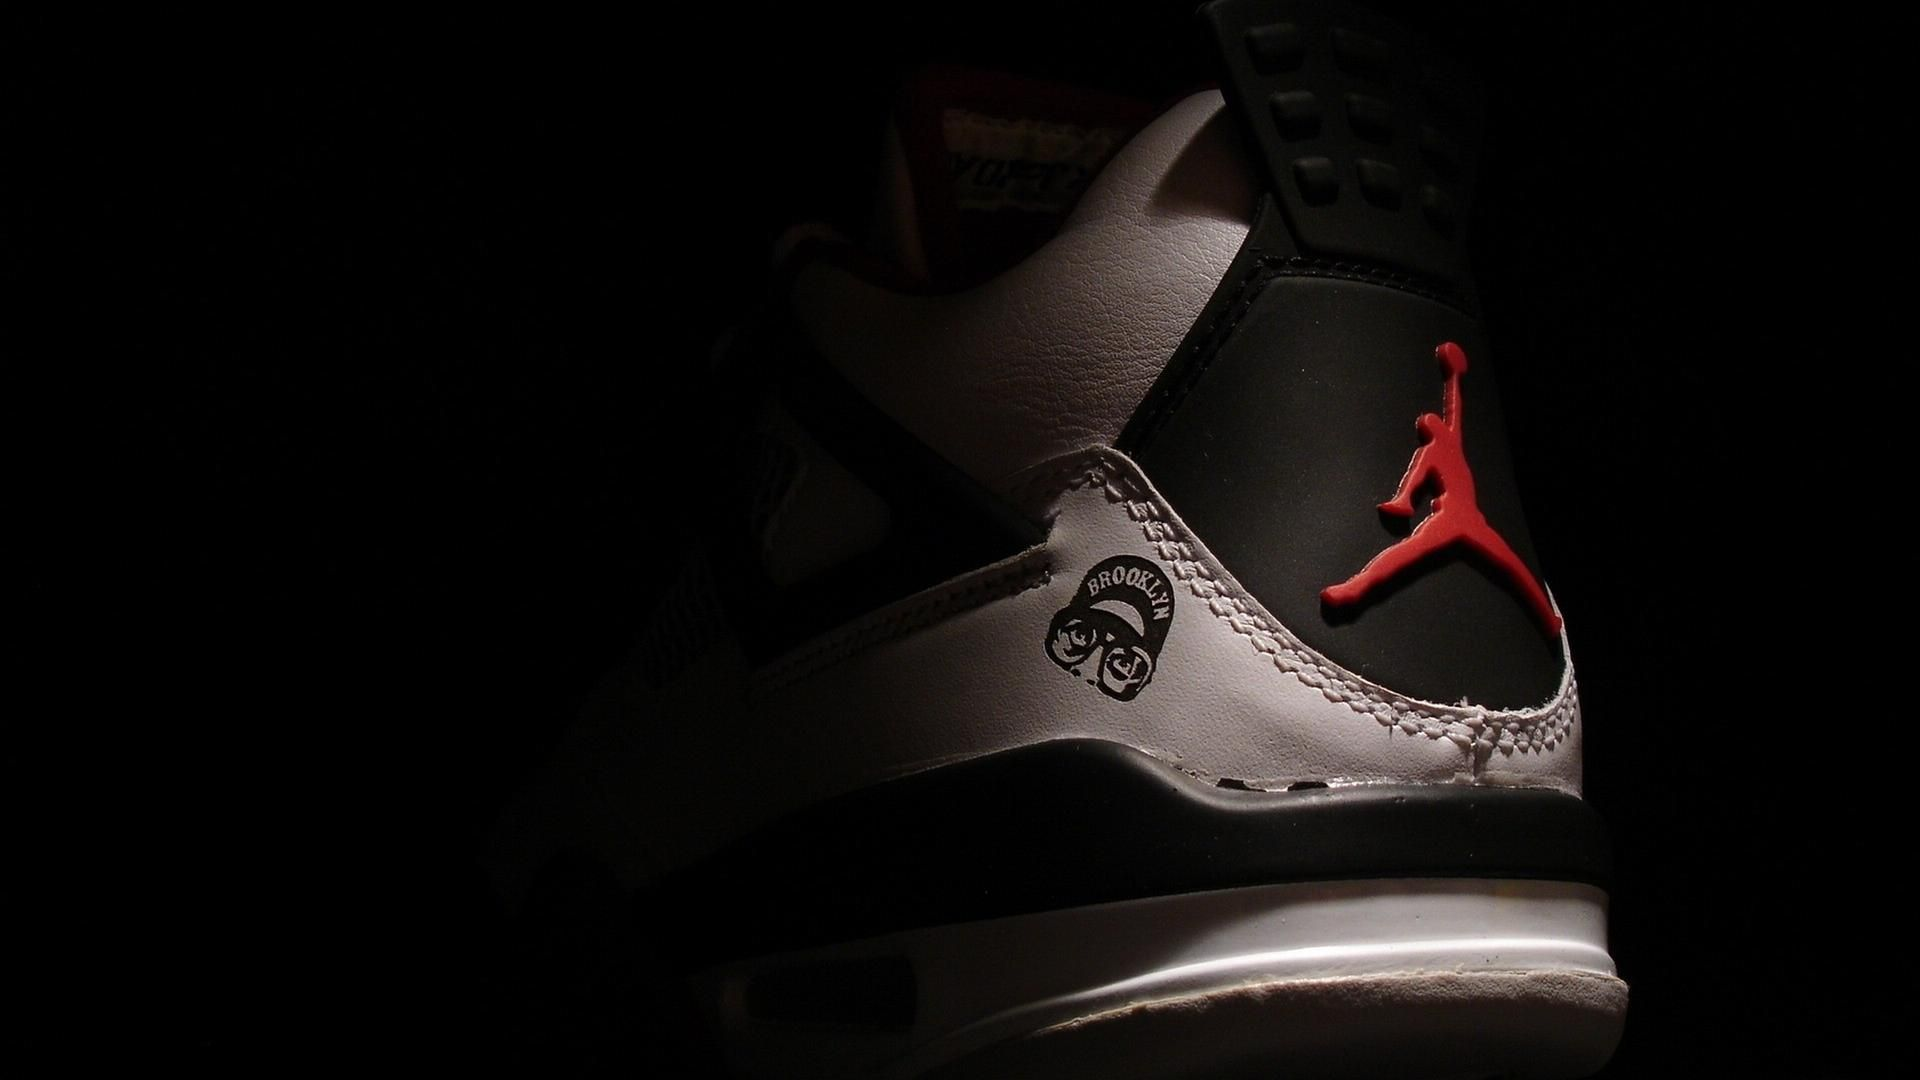 Jordan Shoe Wallpaper